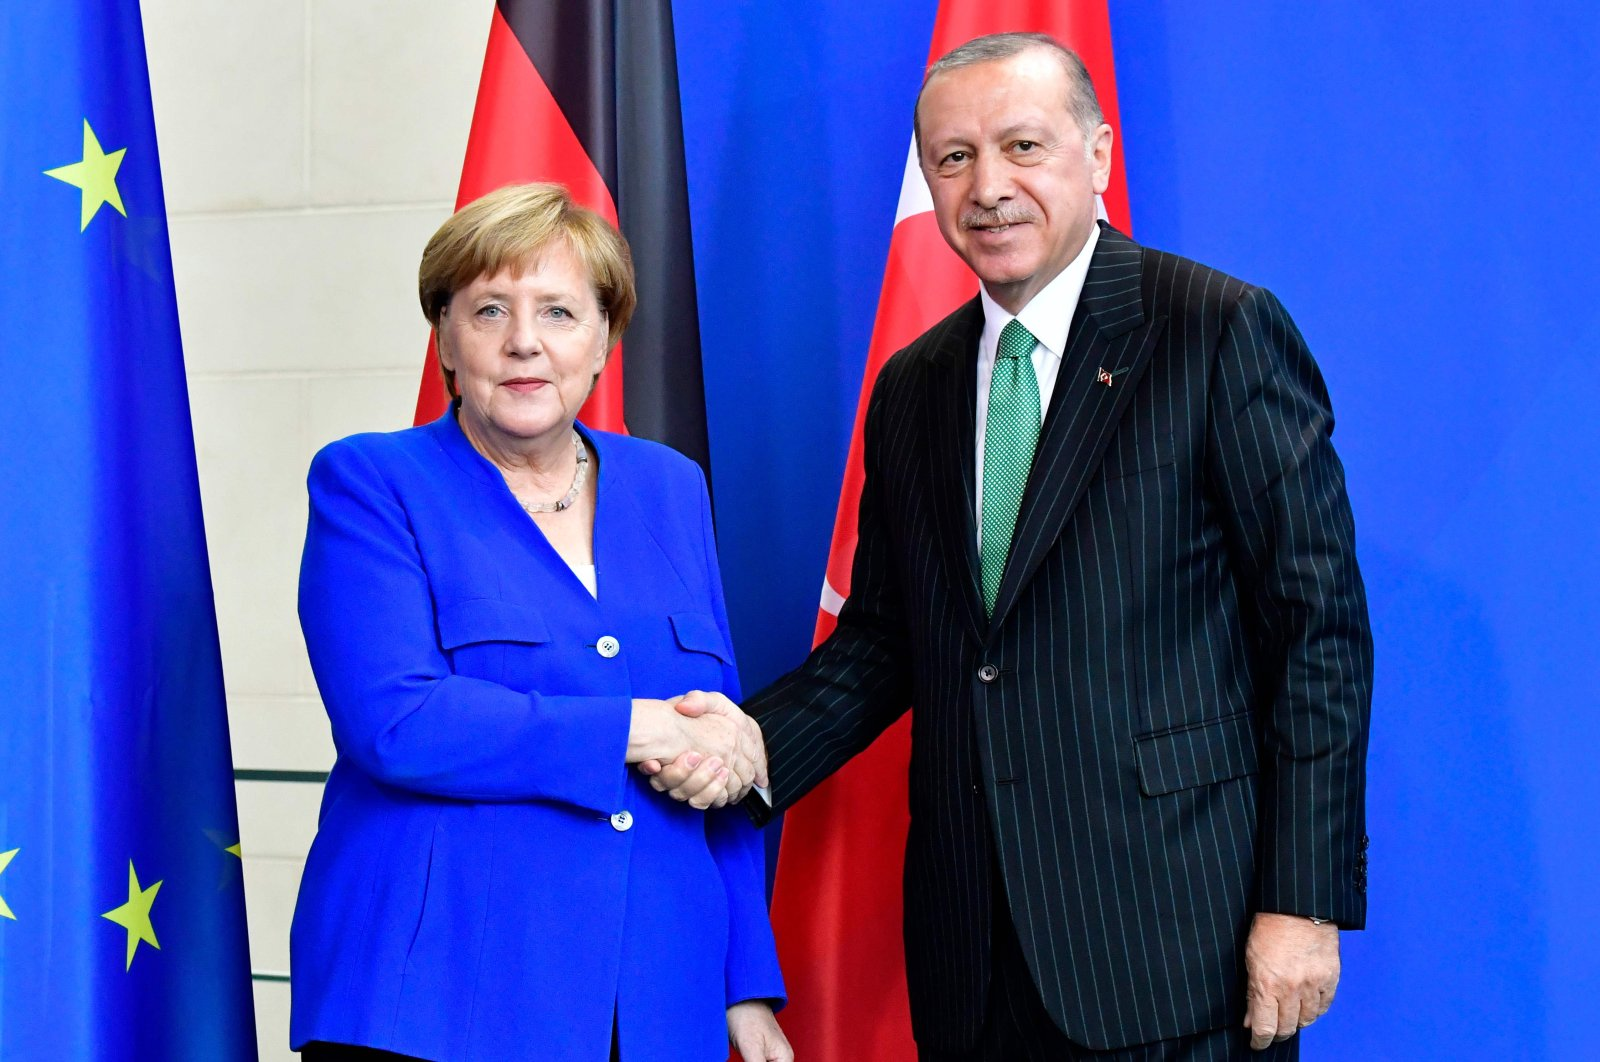 German Chancellor Angela Merkel (l) and President Recep Tayyip Erdoğan shake hands after a joint press conference after bilateral talks on September 28, 2018 at the chancellery in Berlin (AFP File Photo)